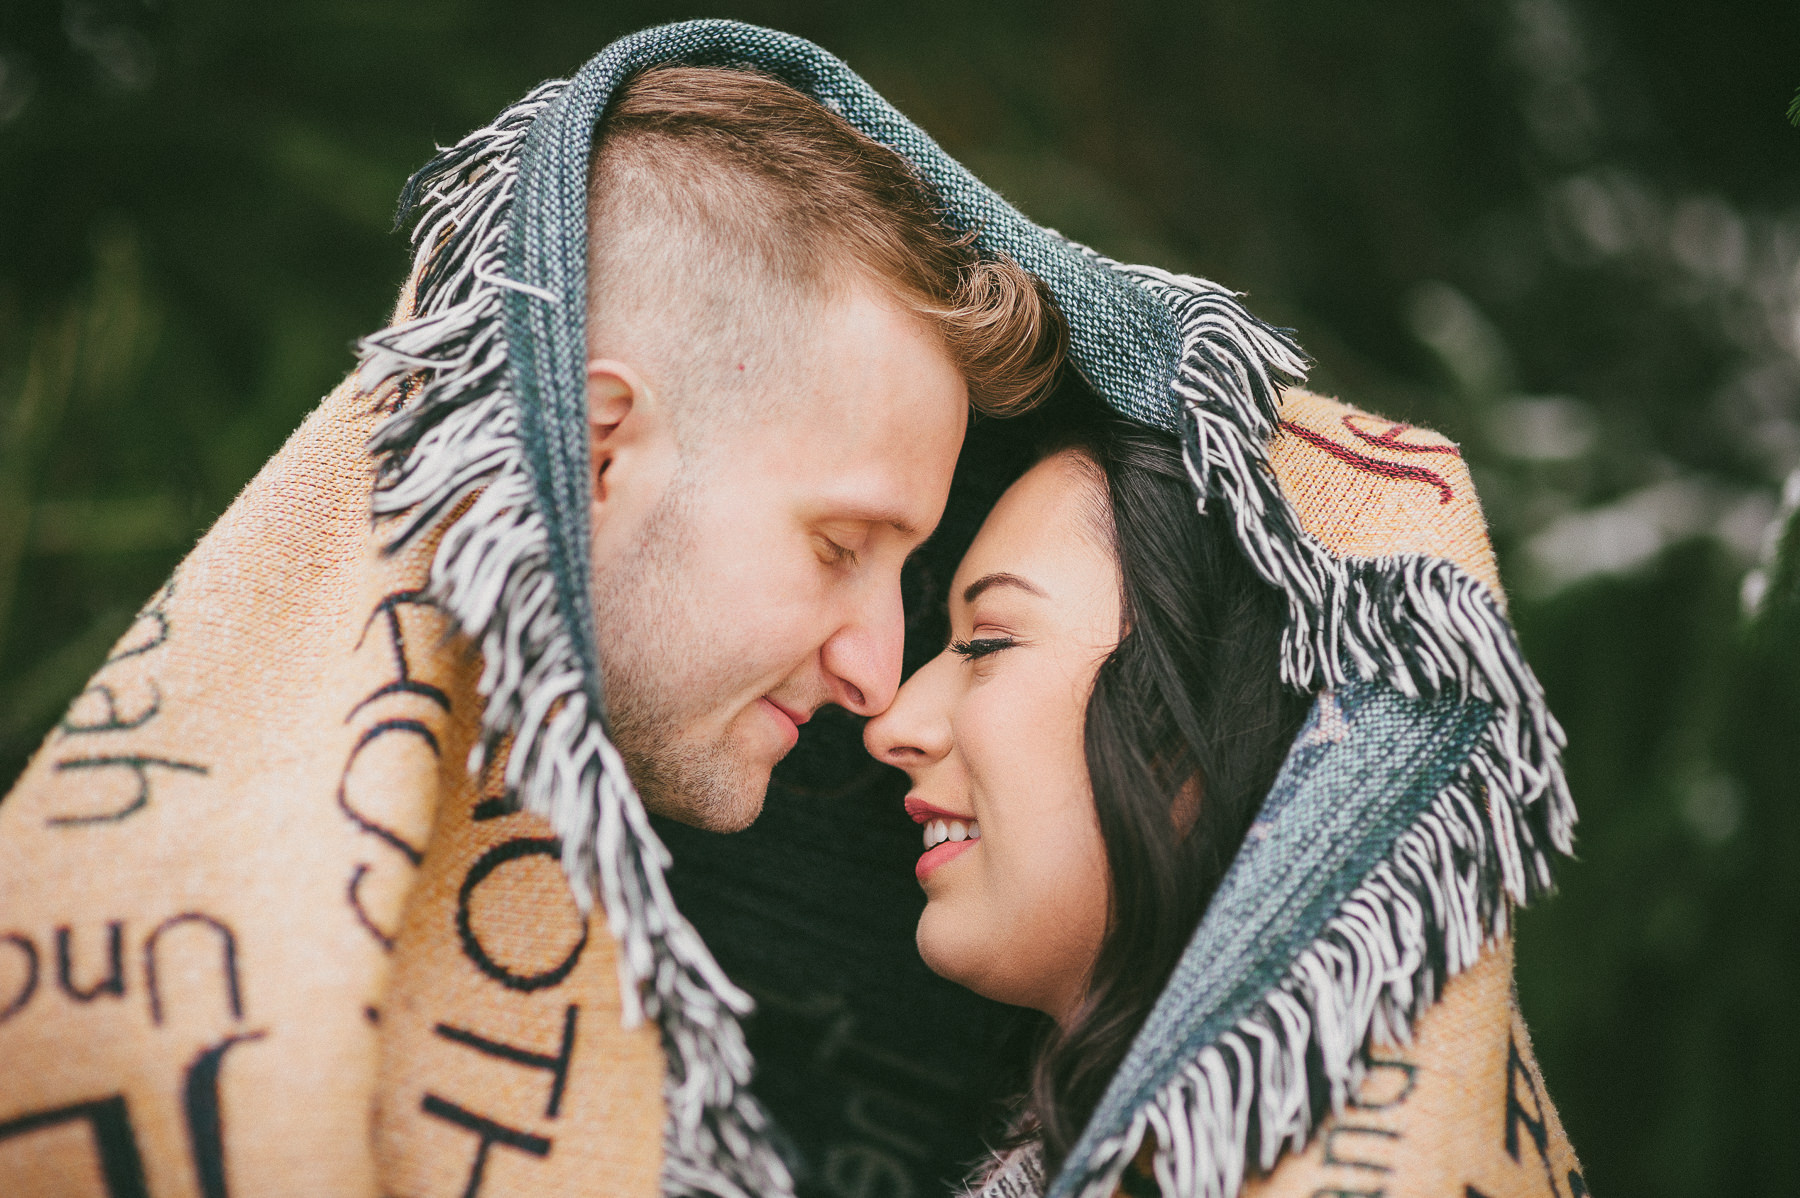 breighton-and-basette-photography-copyrighted-image-blog-abigail-and-ryne-engagement-042.jpg